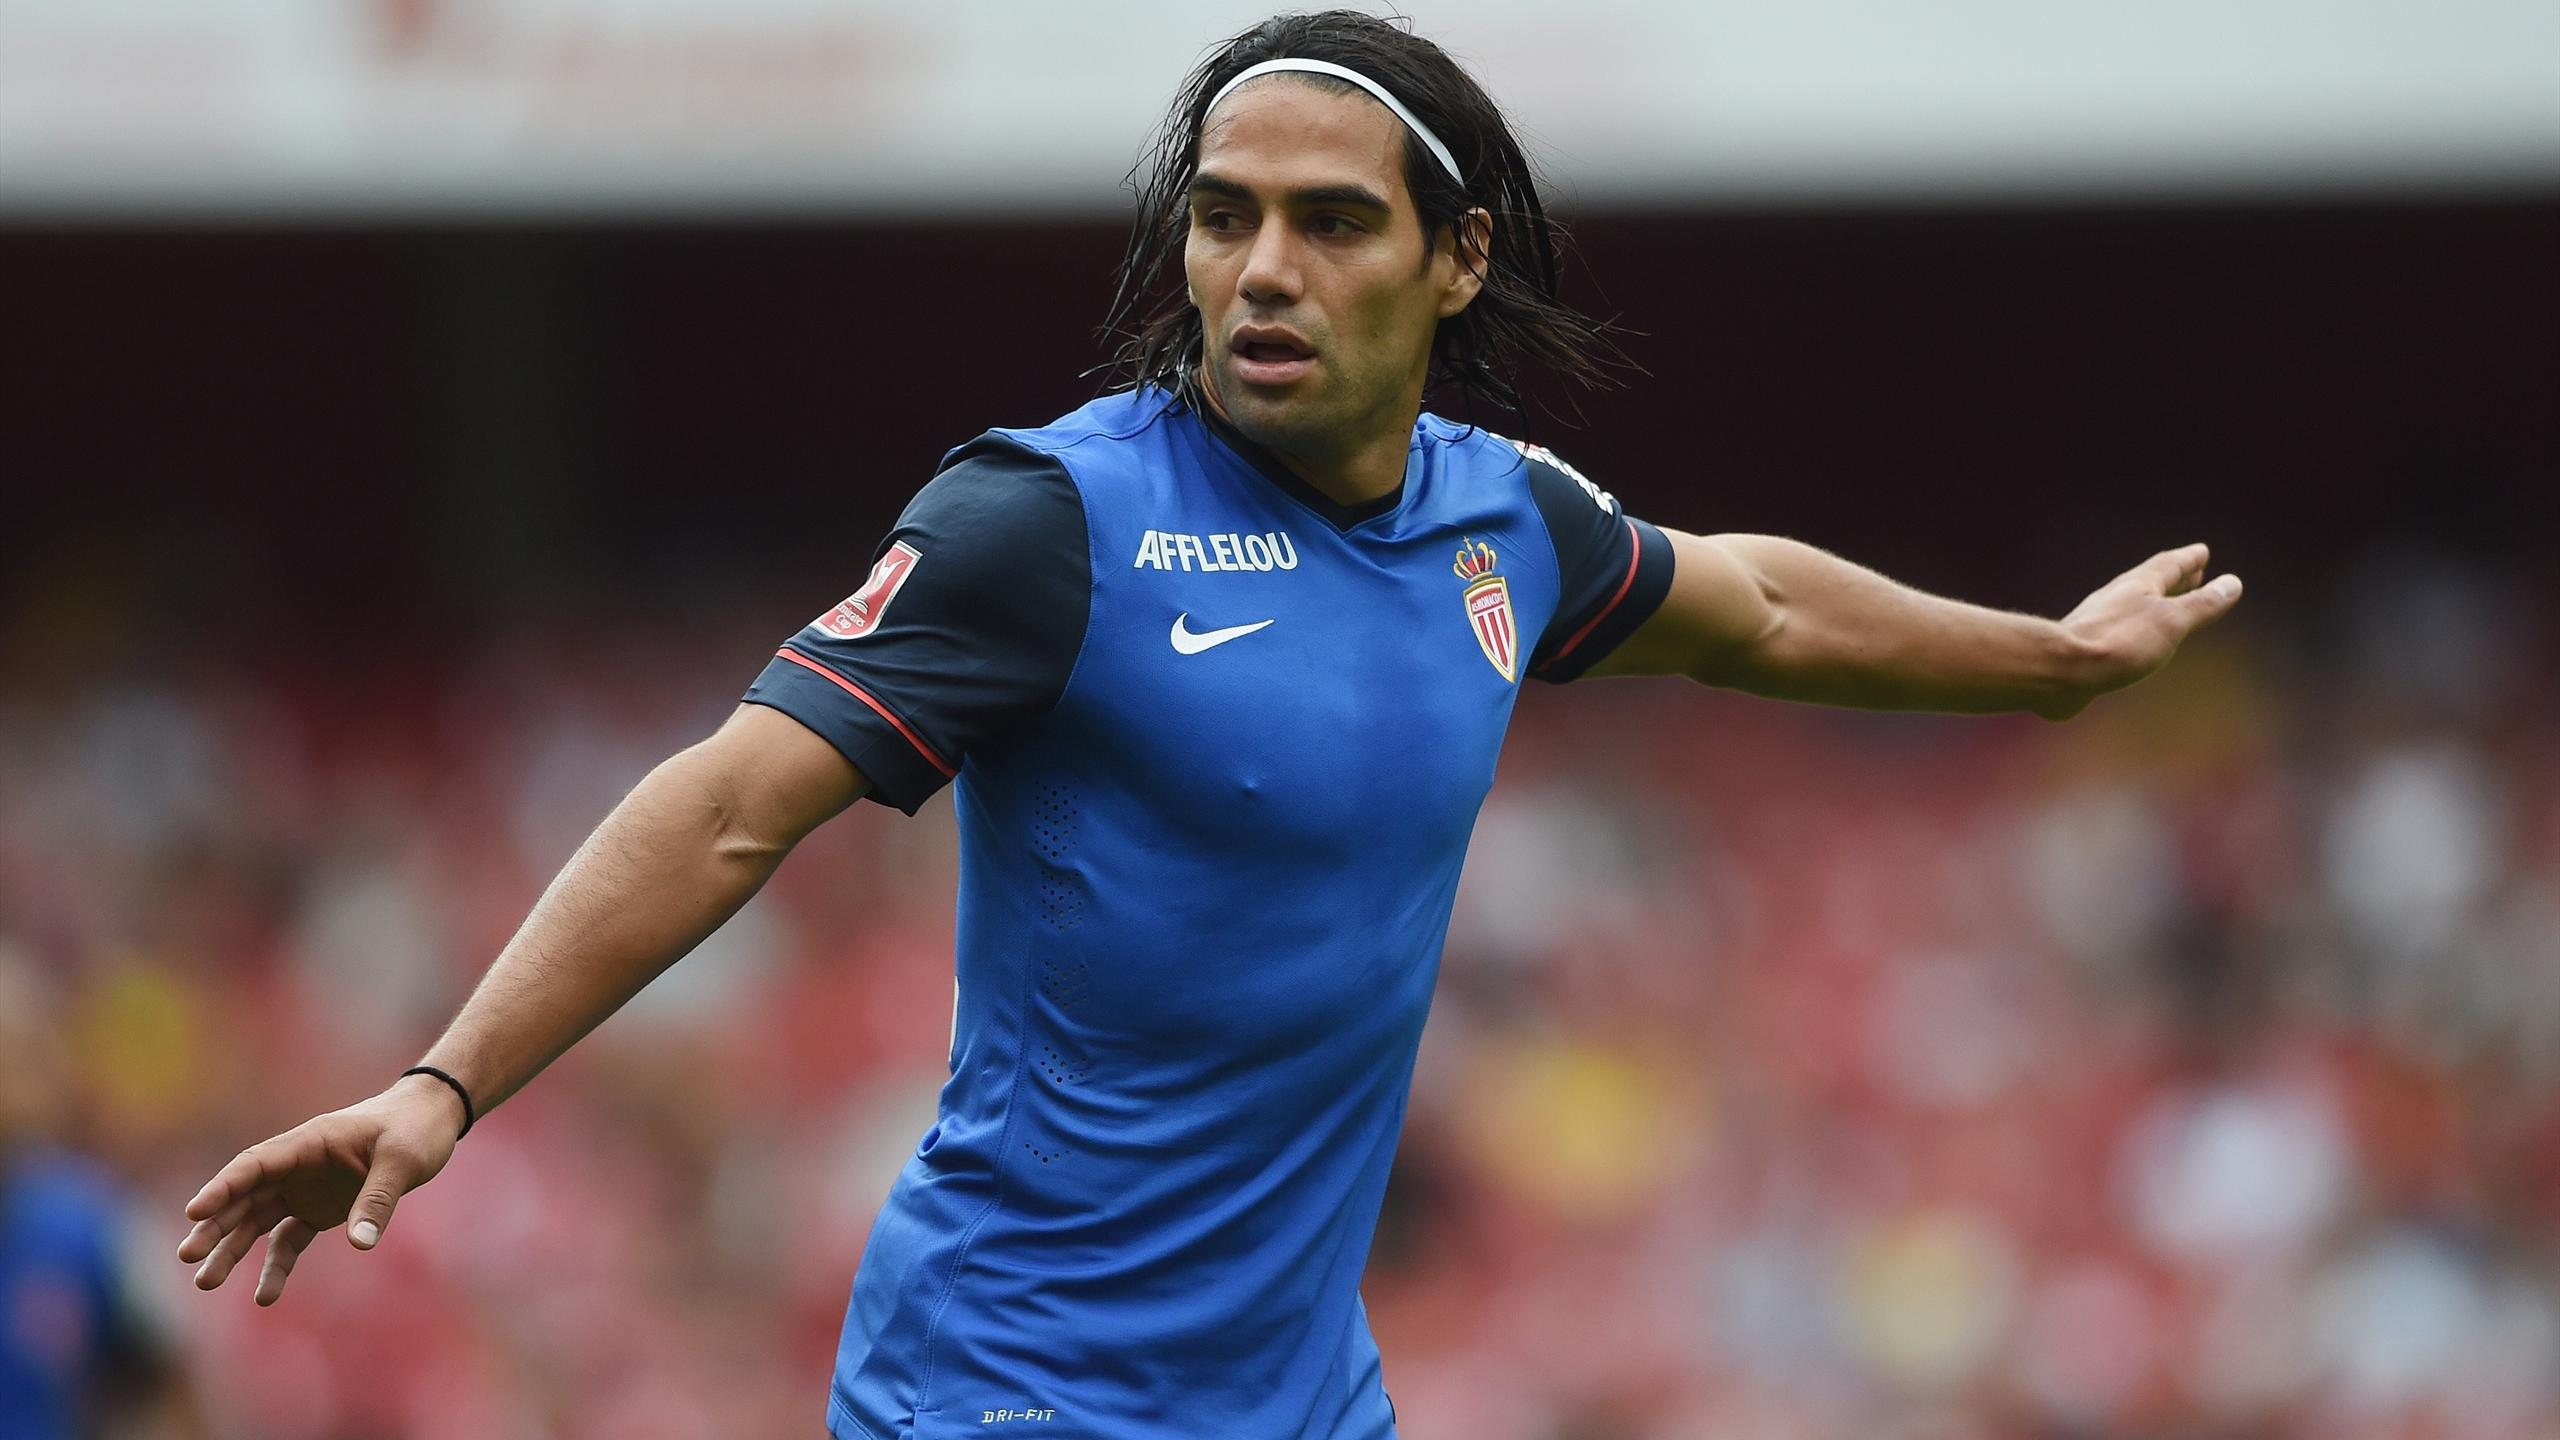 Friendly match - Falcao scores as refereeing blunder hands Monaco victory over Arsenal